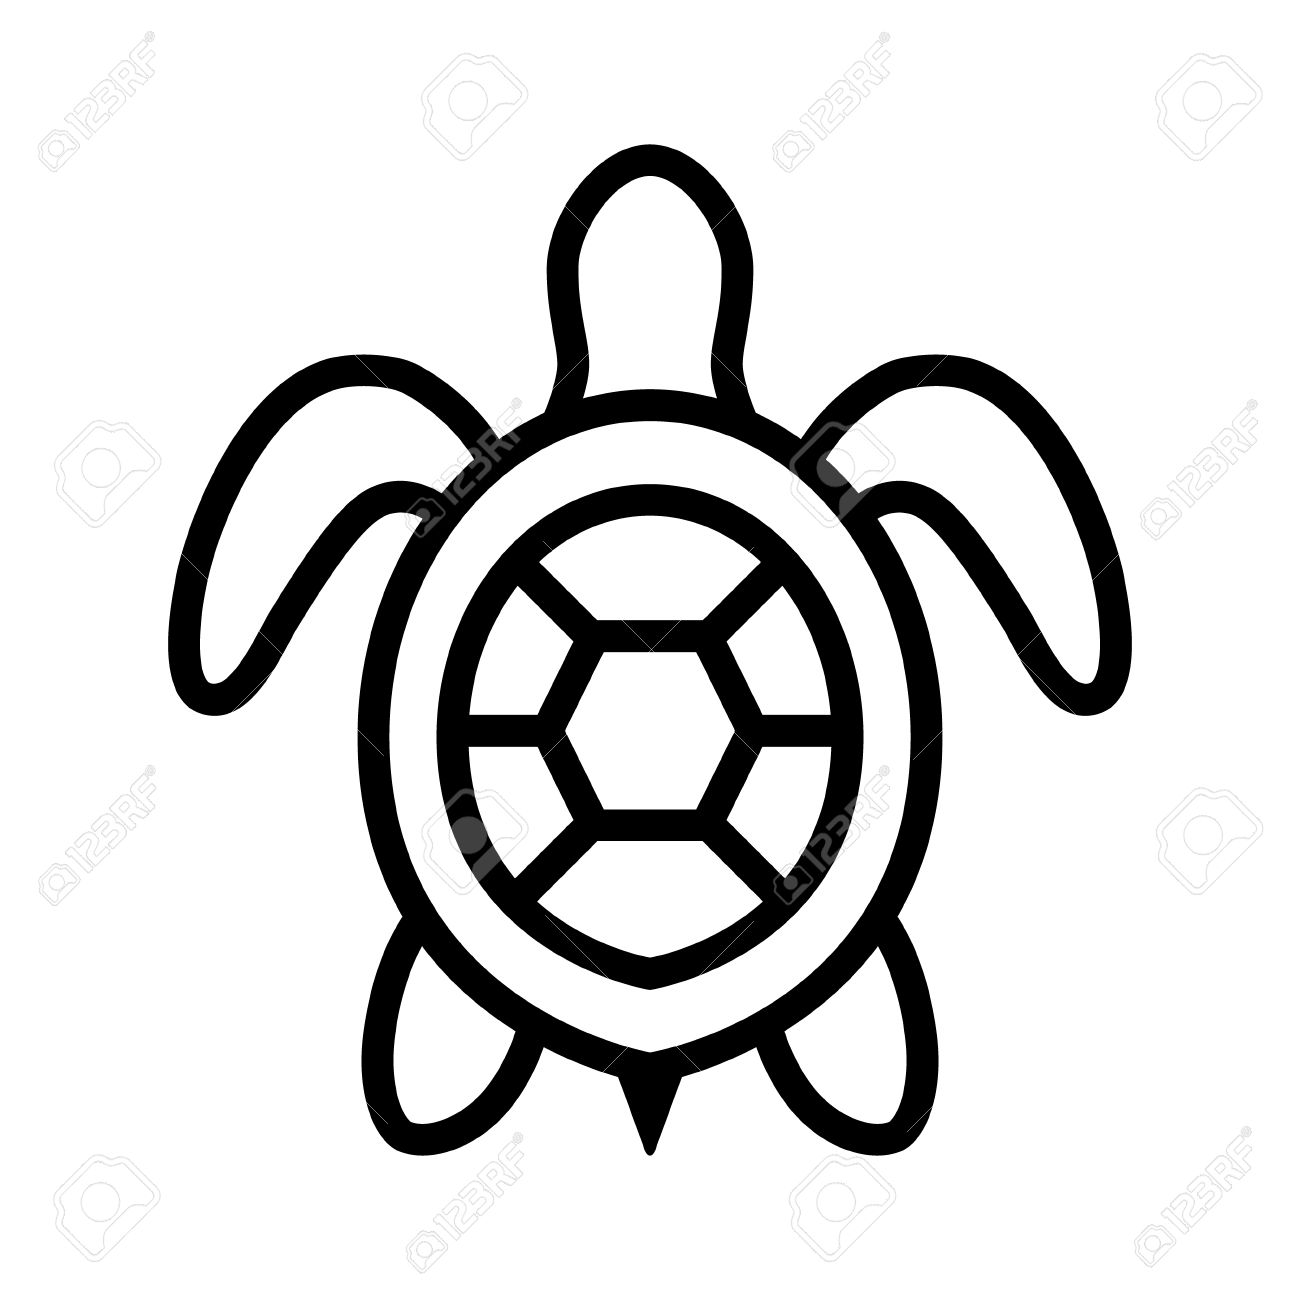 Turtle Clipart Top View.